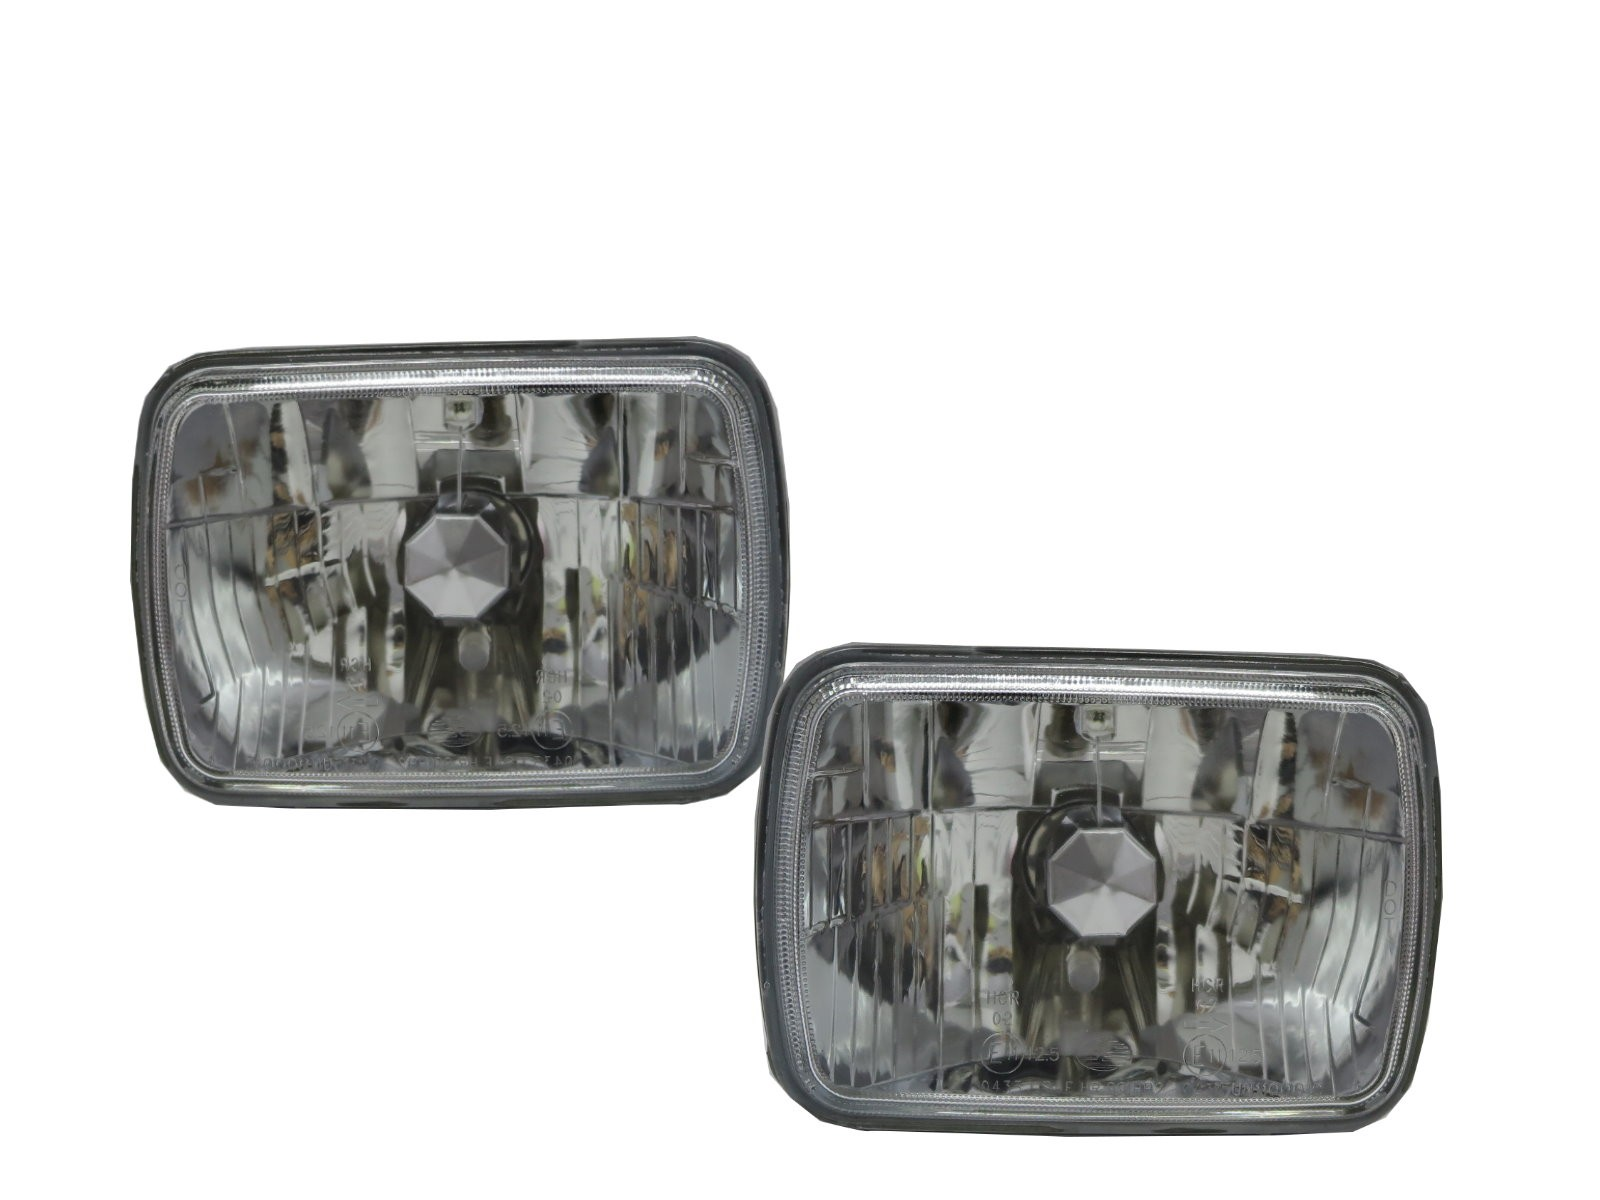 CrazyTheGod Bravada First generation 1991-1994 Wagon 5D Crystal Headlight Headlamp Chrome for OLDSMOBILE LHD